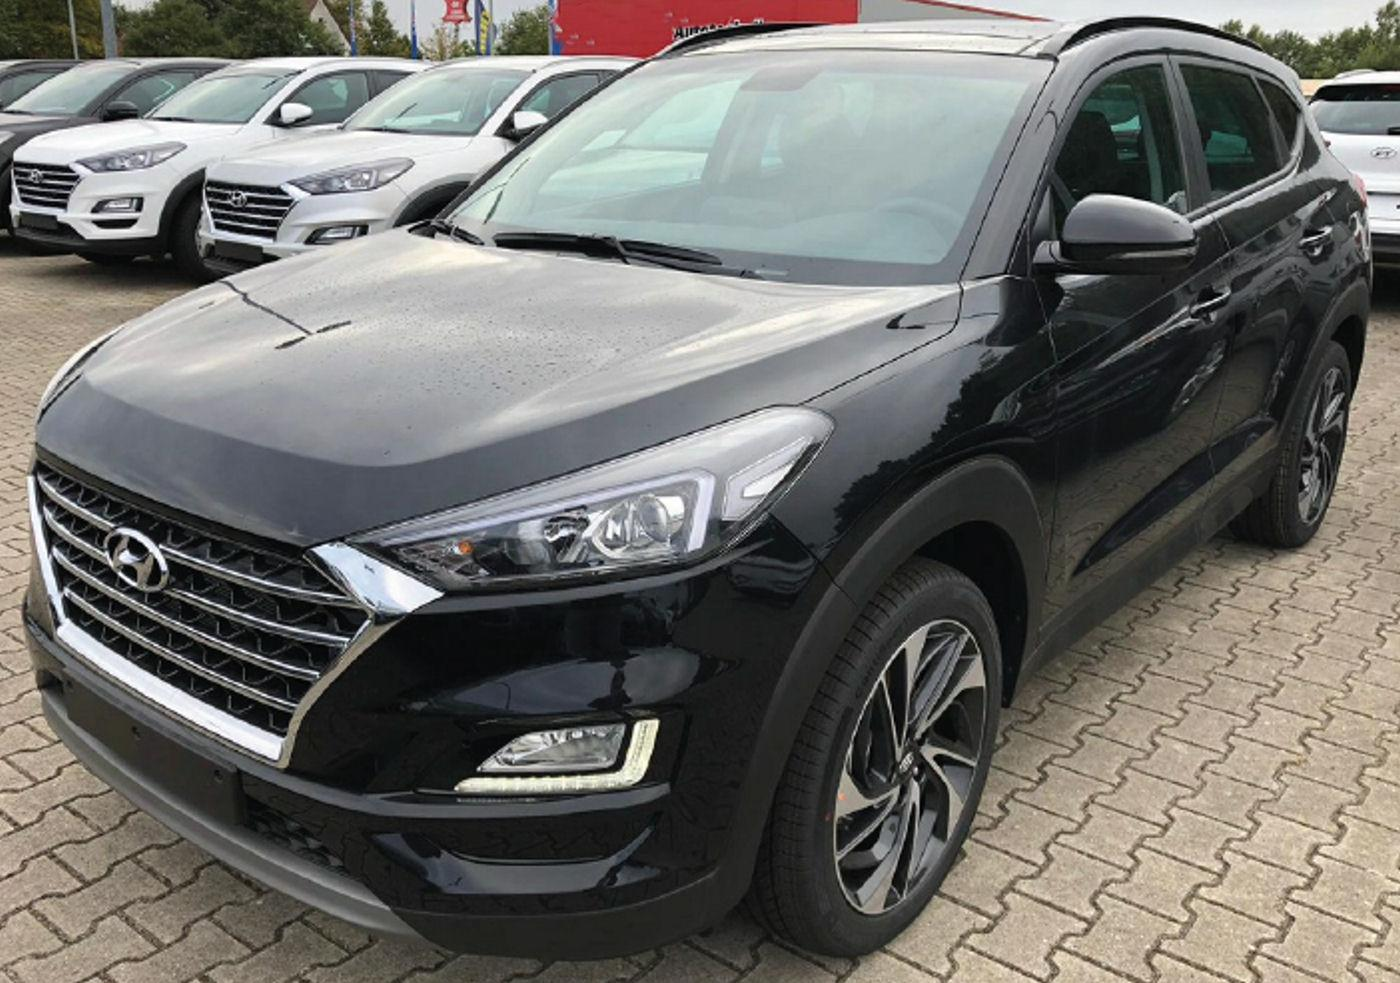 hyundai tucson facelift 1 6 crdi 2wd 7 dct automatik auto. Black Bedroom Furniture Sets. Home Design Ideas